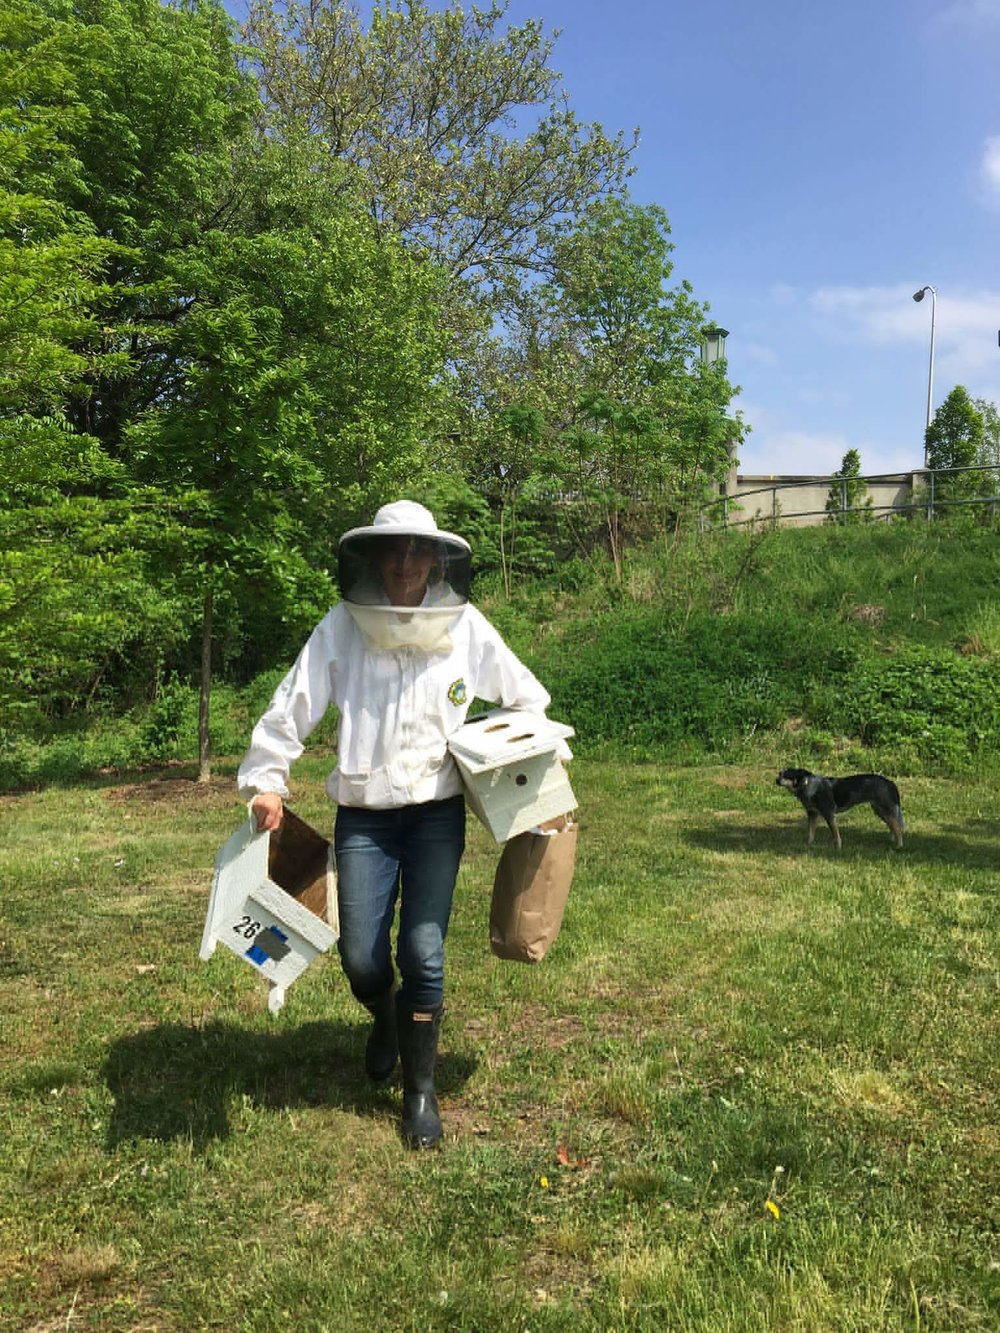 Pollinator Project founder, Chelsea, after a bee colony installation. (Juni carefully observing in the background)